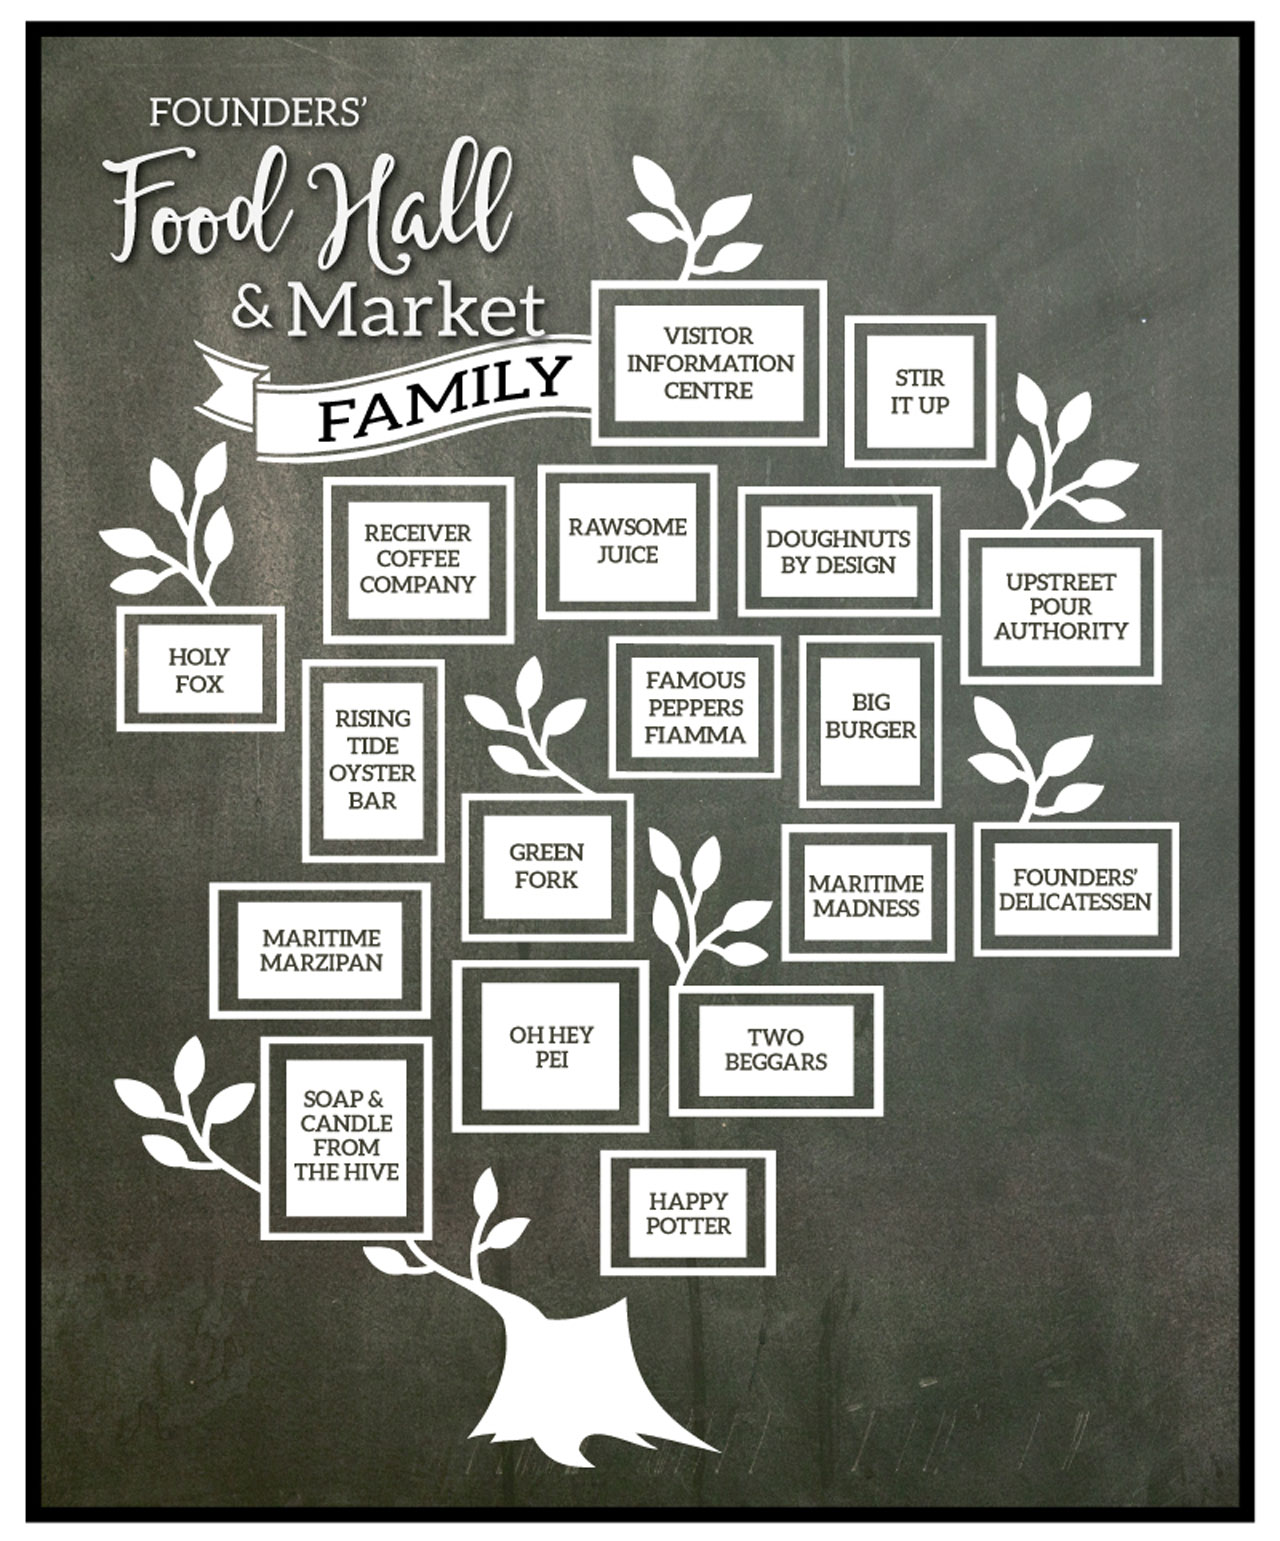 Founders Food Hall & Market Family